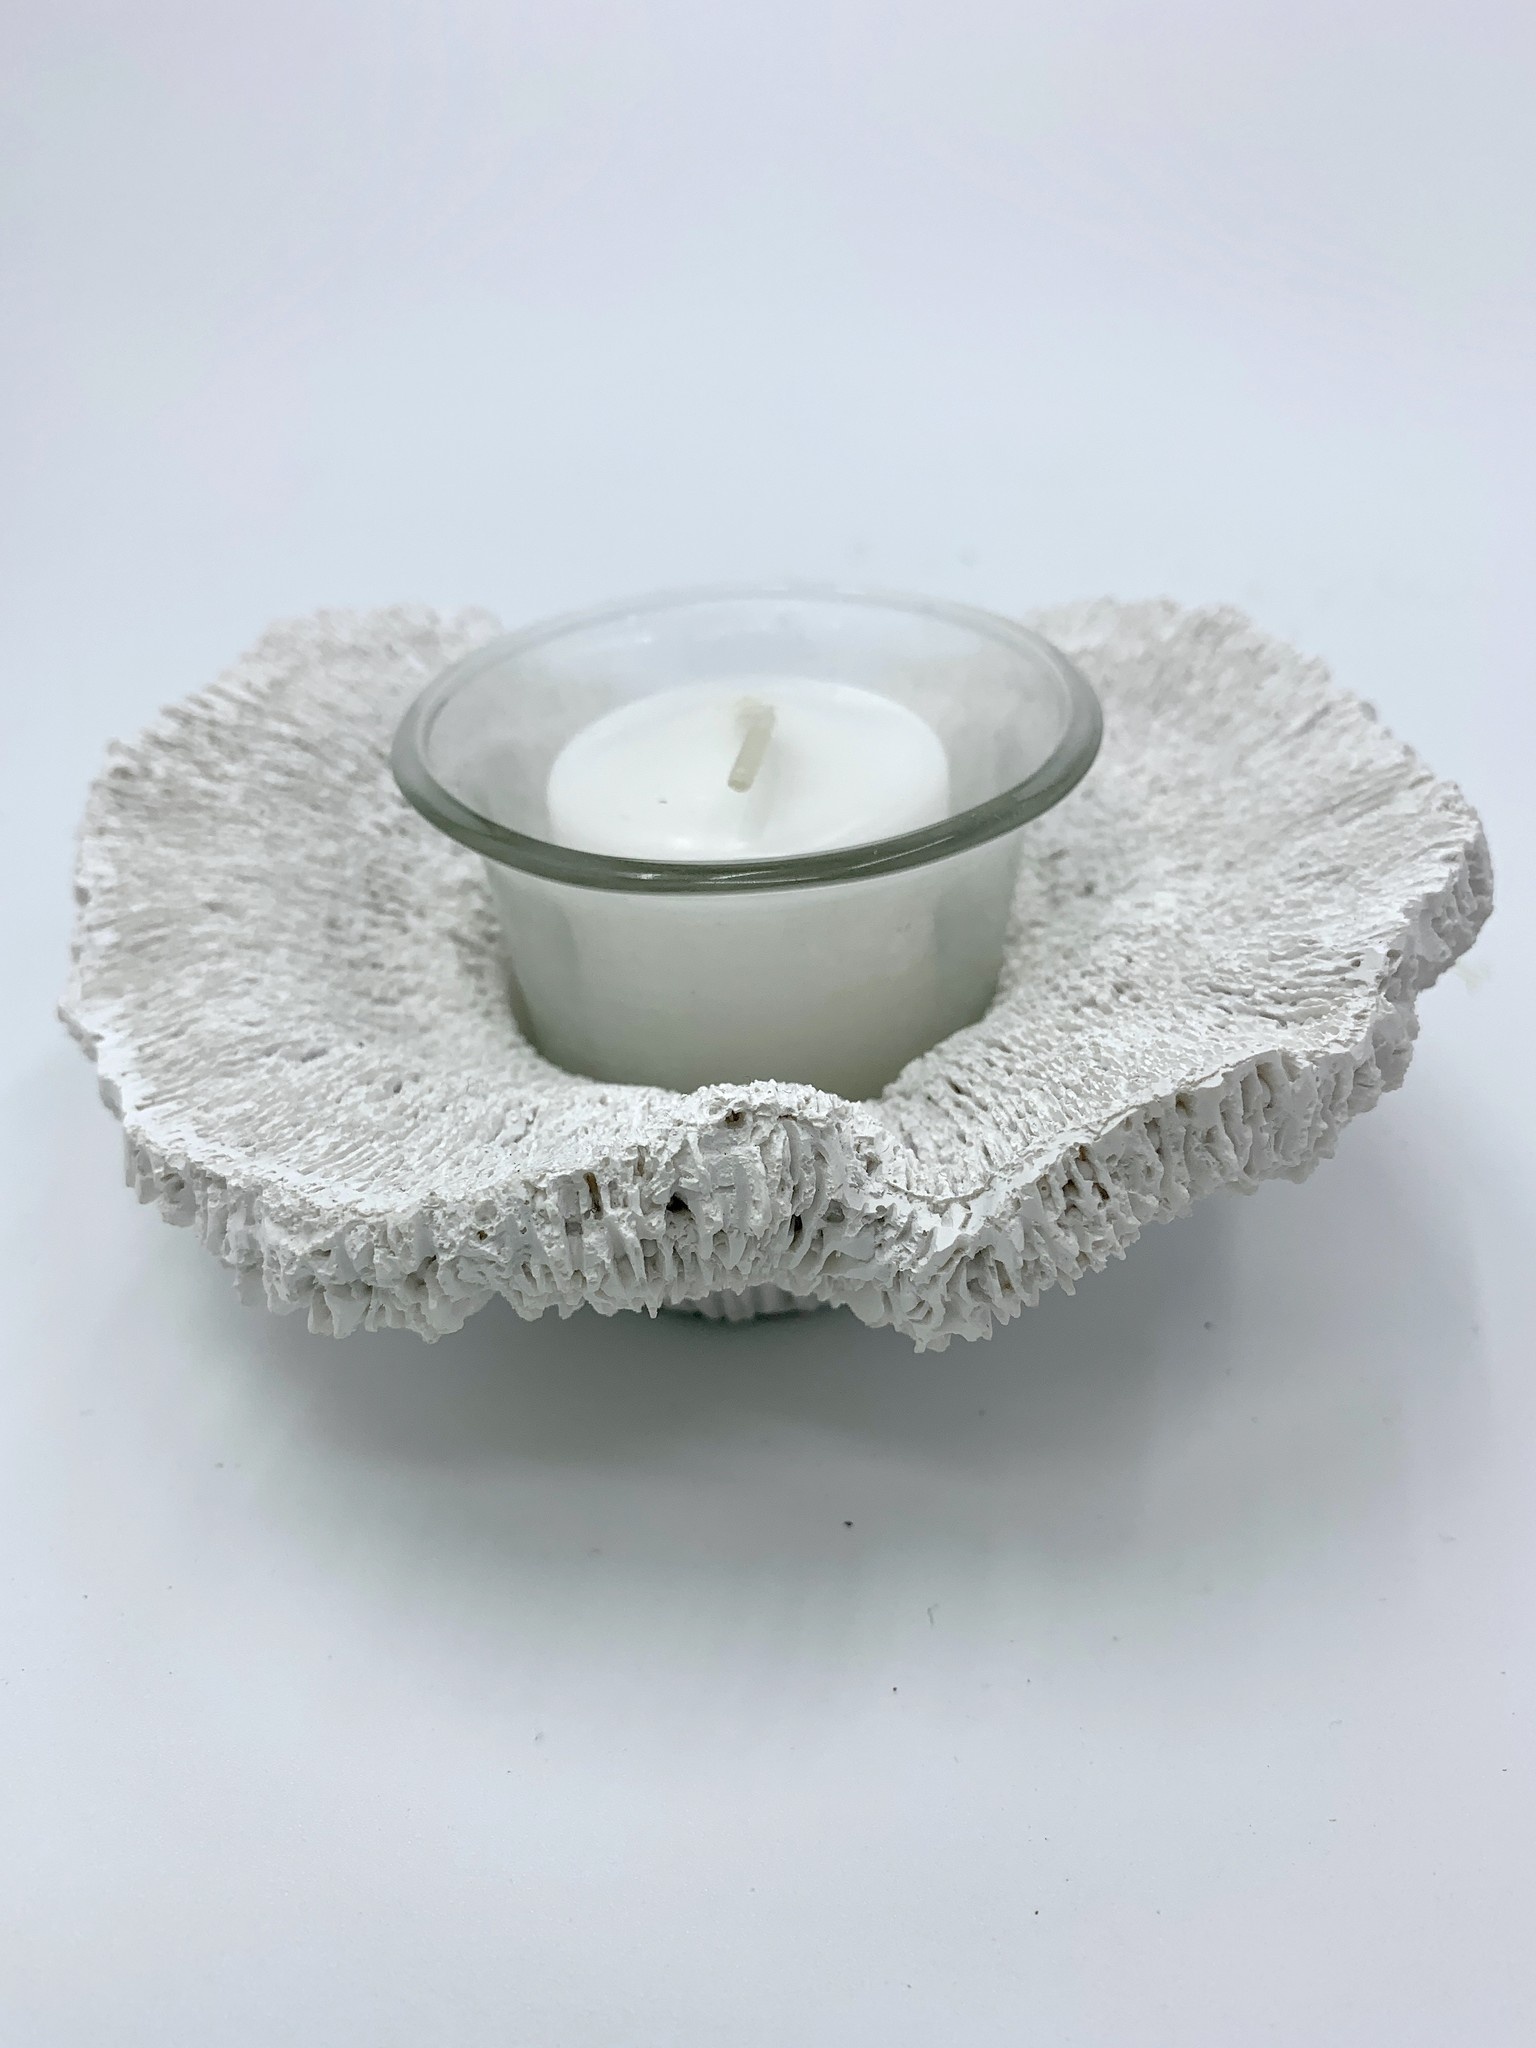 Zodax Coral Tealight Holder